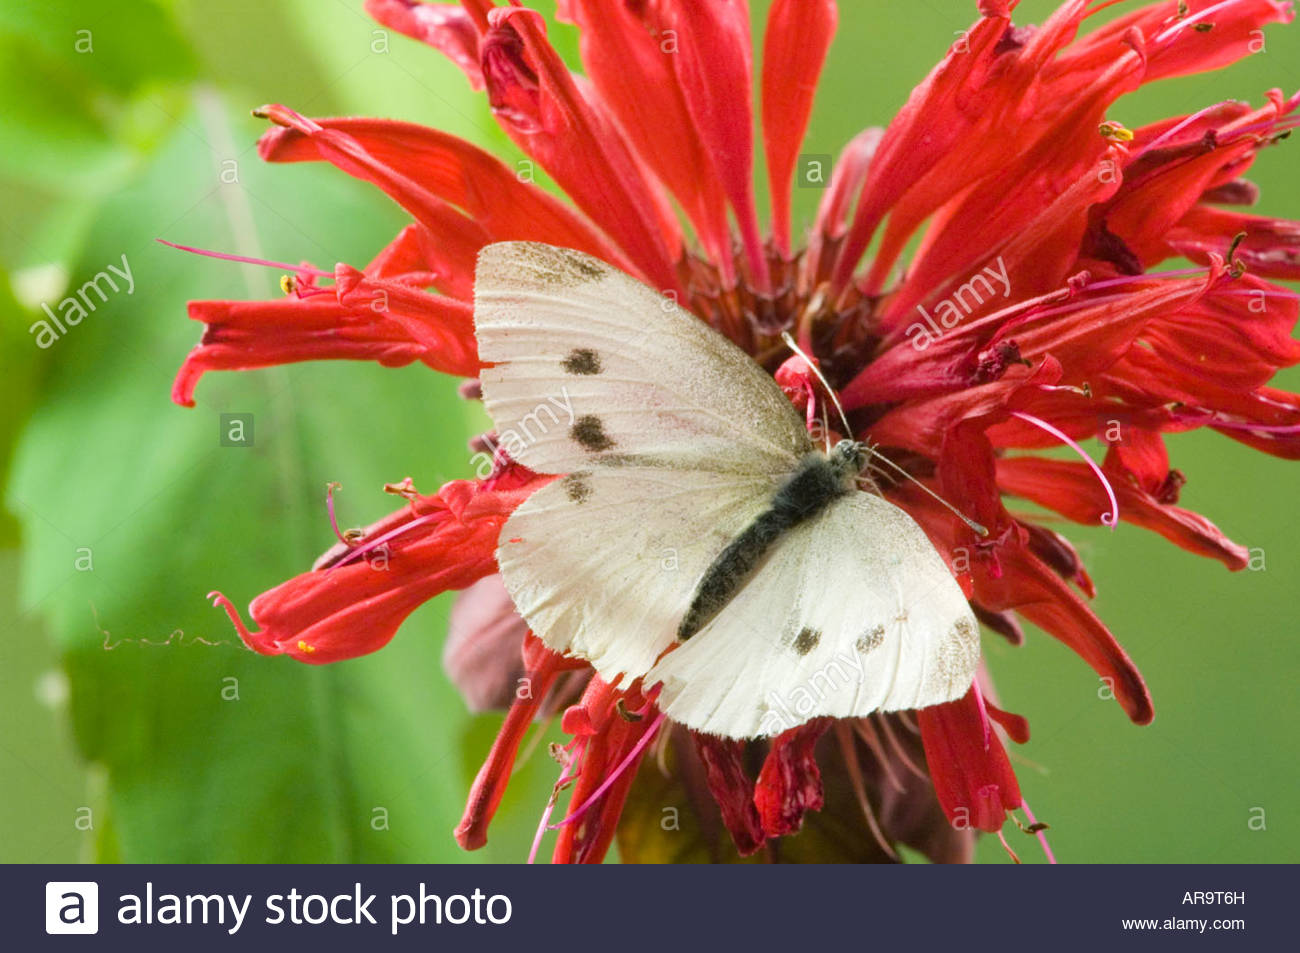 Cabbage White butterfly Pieris rapae on Bee Balm blossom - Stock Image